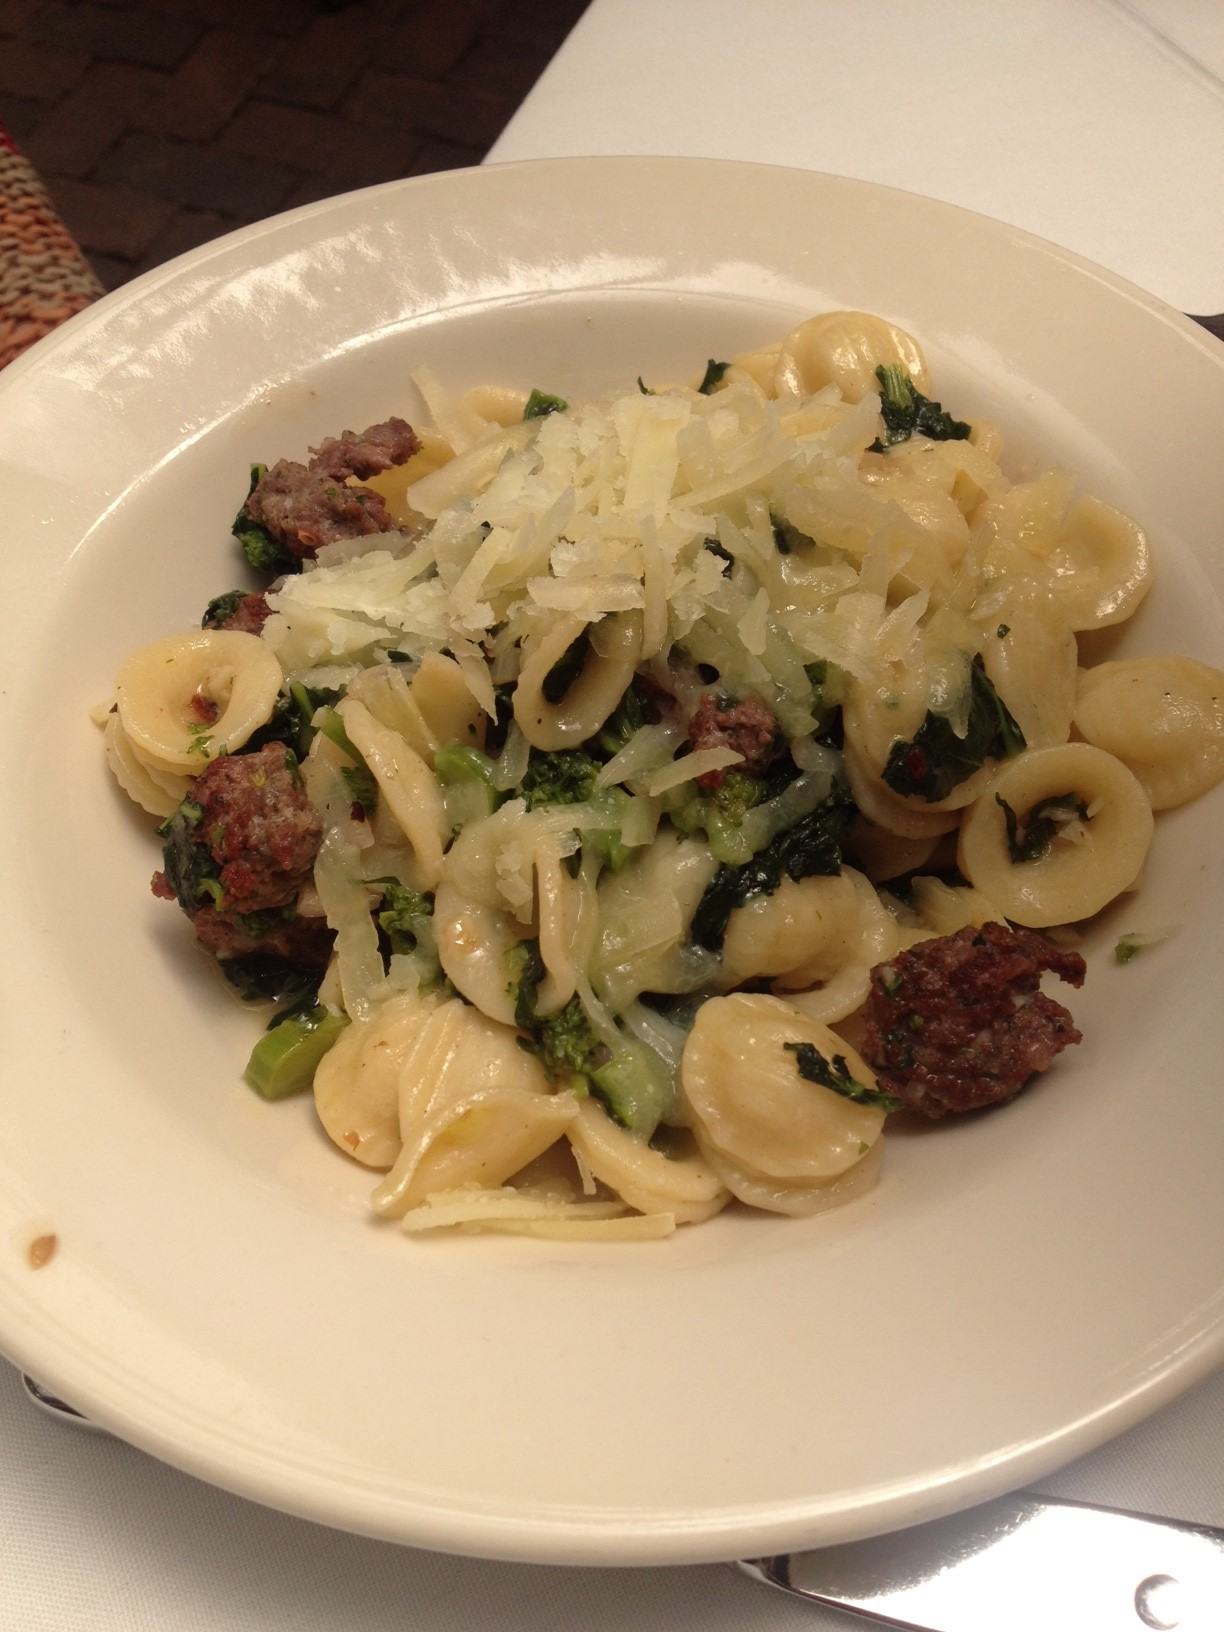 Orecchiette with Broccoli Rabe and Boar Sausage